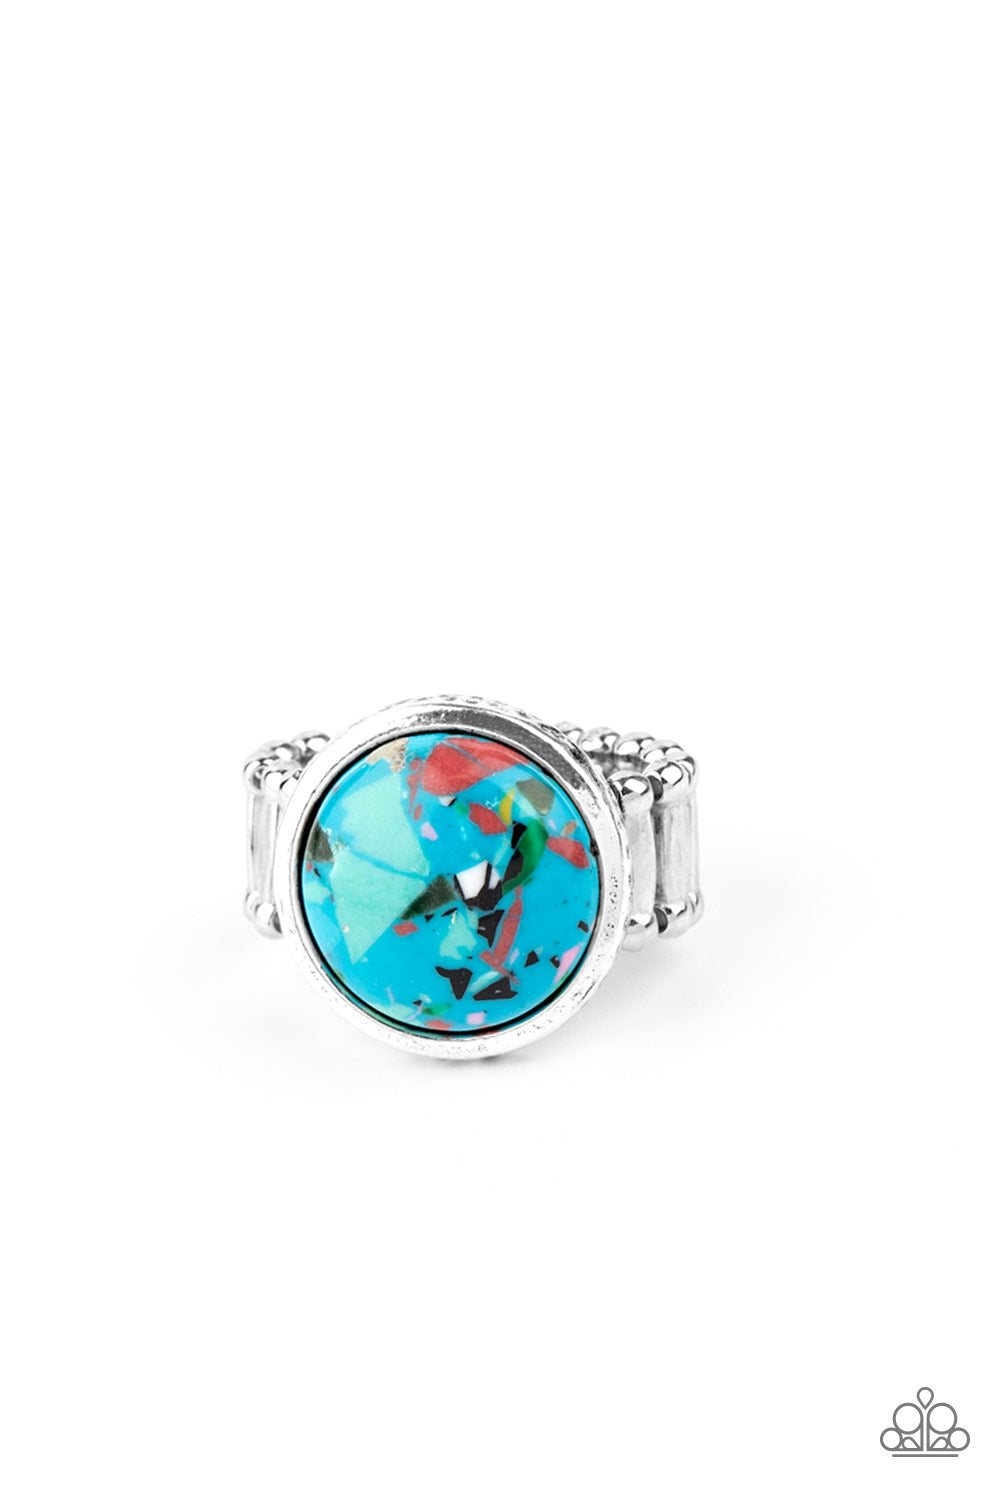 five-dollar-jewelry-marble-mosaic-blue-ring-paparazzi-accessories